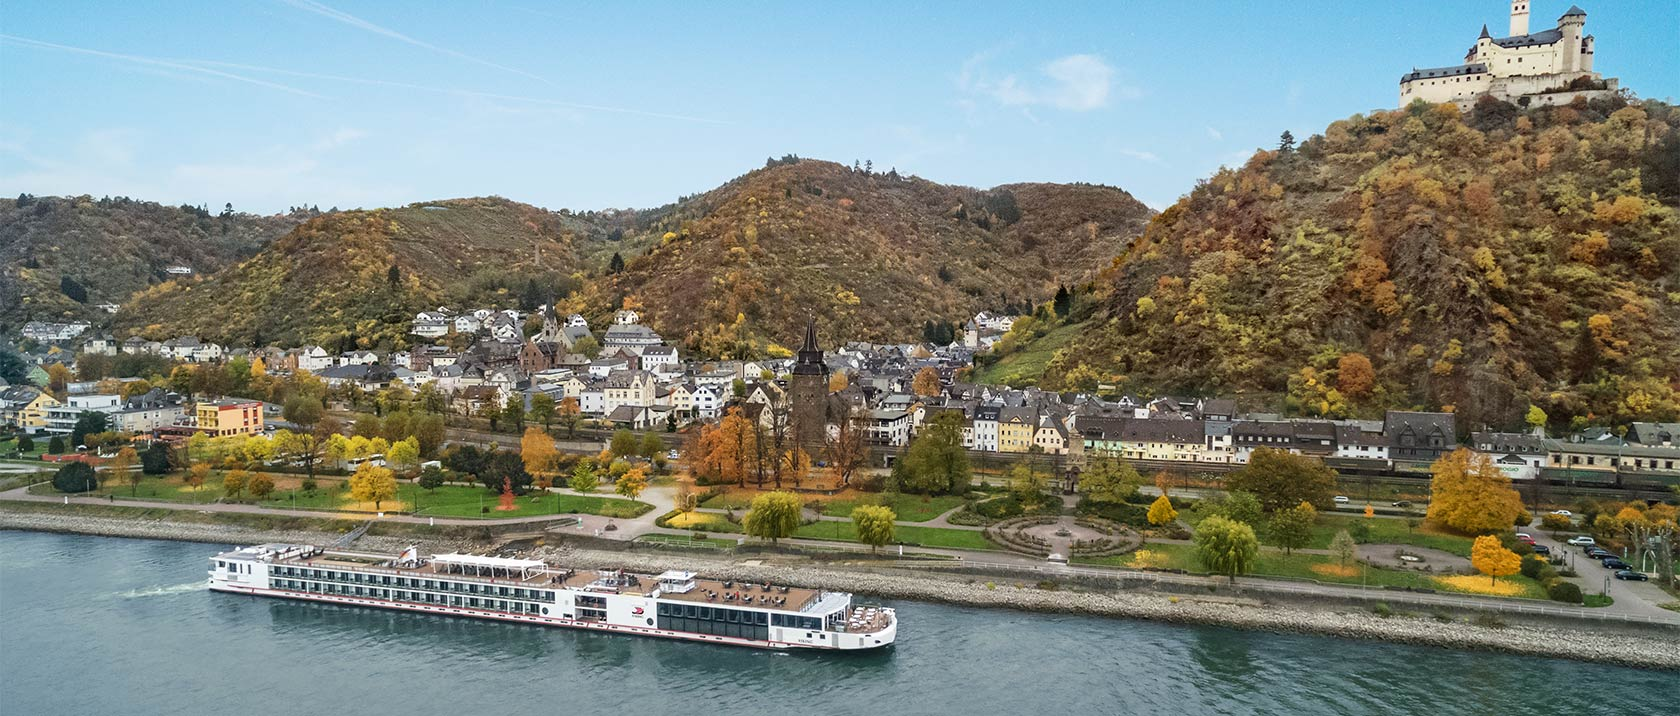 Aerial view of a Viking river ship sailing past Braubach, Germany with Marksburg Castle in the background